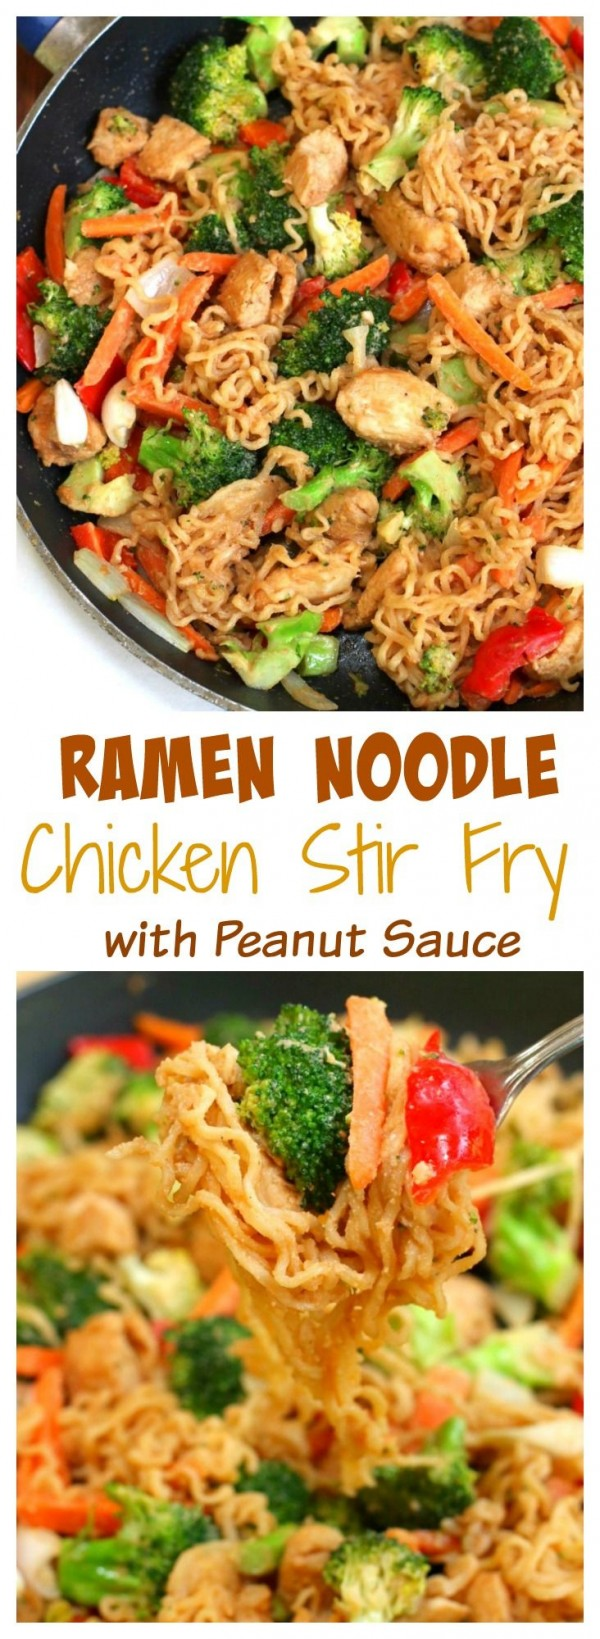 50 Best Chicken Recipes Ever - Get the recipe ♥ Ramen Noodle Chicken Stir Fry with Peanut Sauce @recipes_to_go